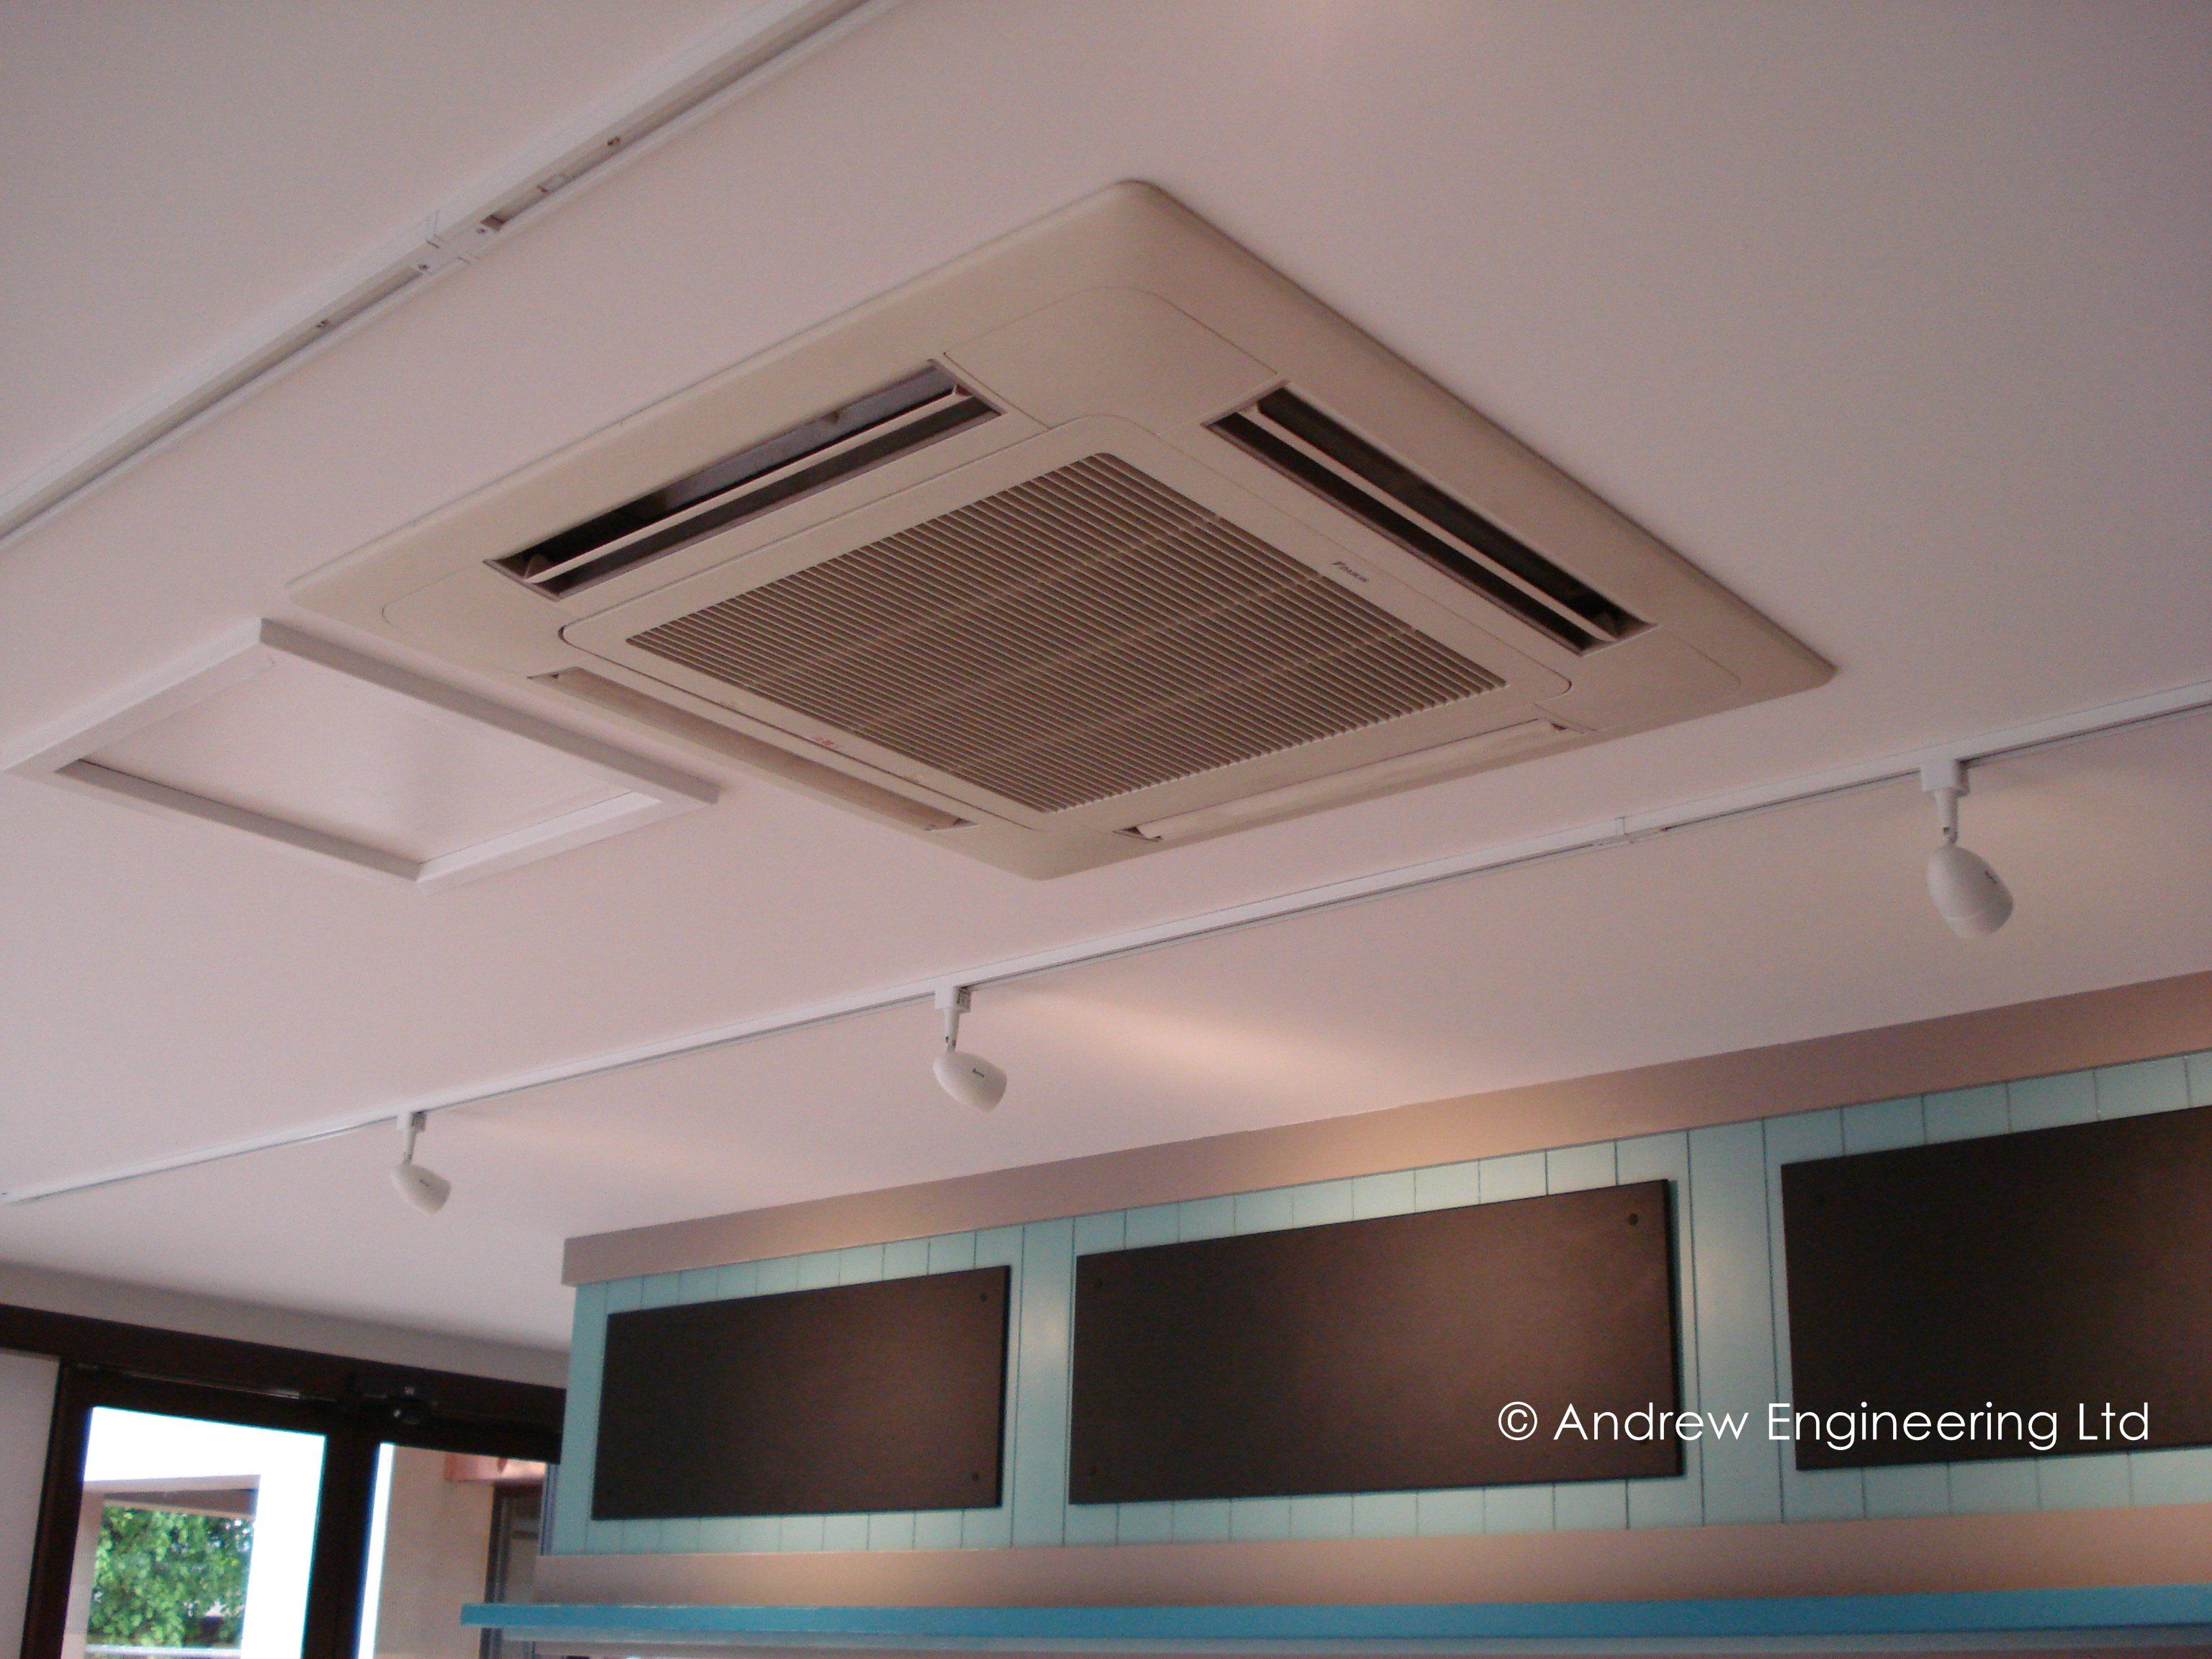 Ceiling cassette air conditioning in a cafe Air